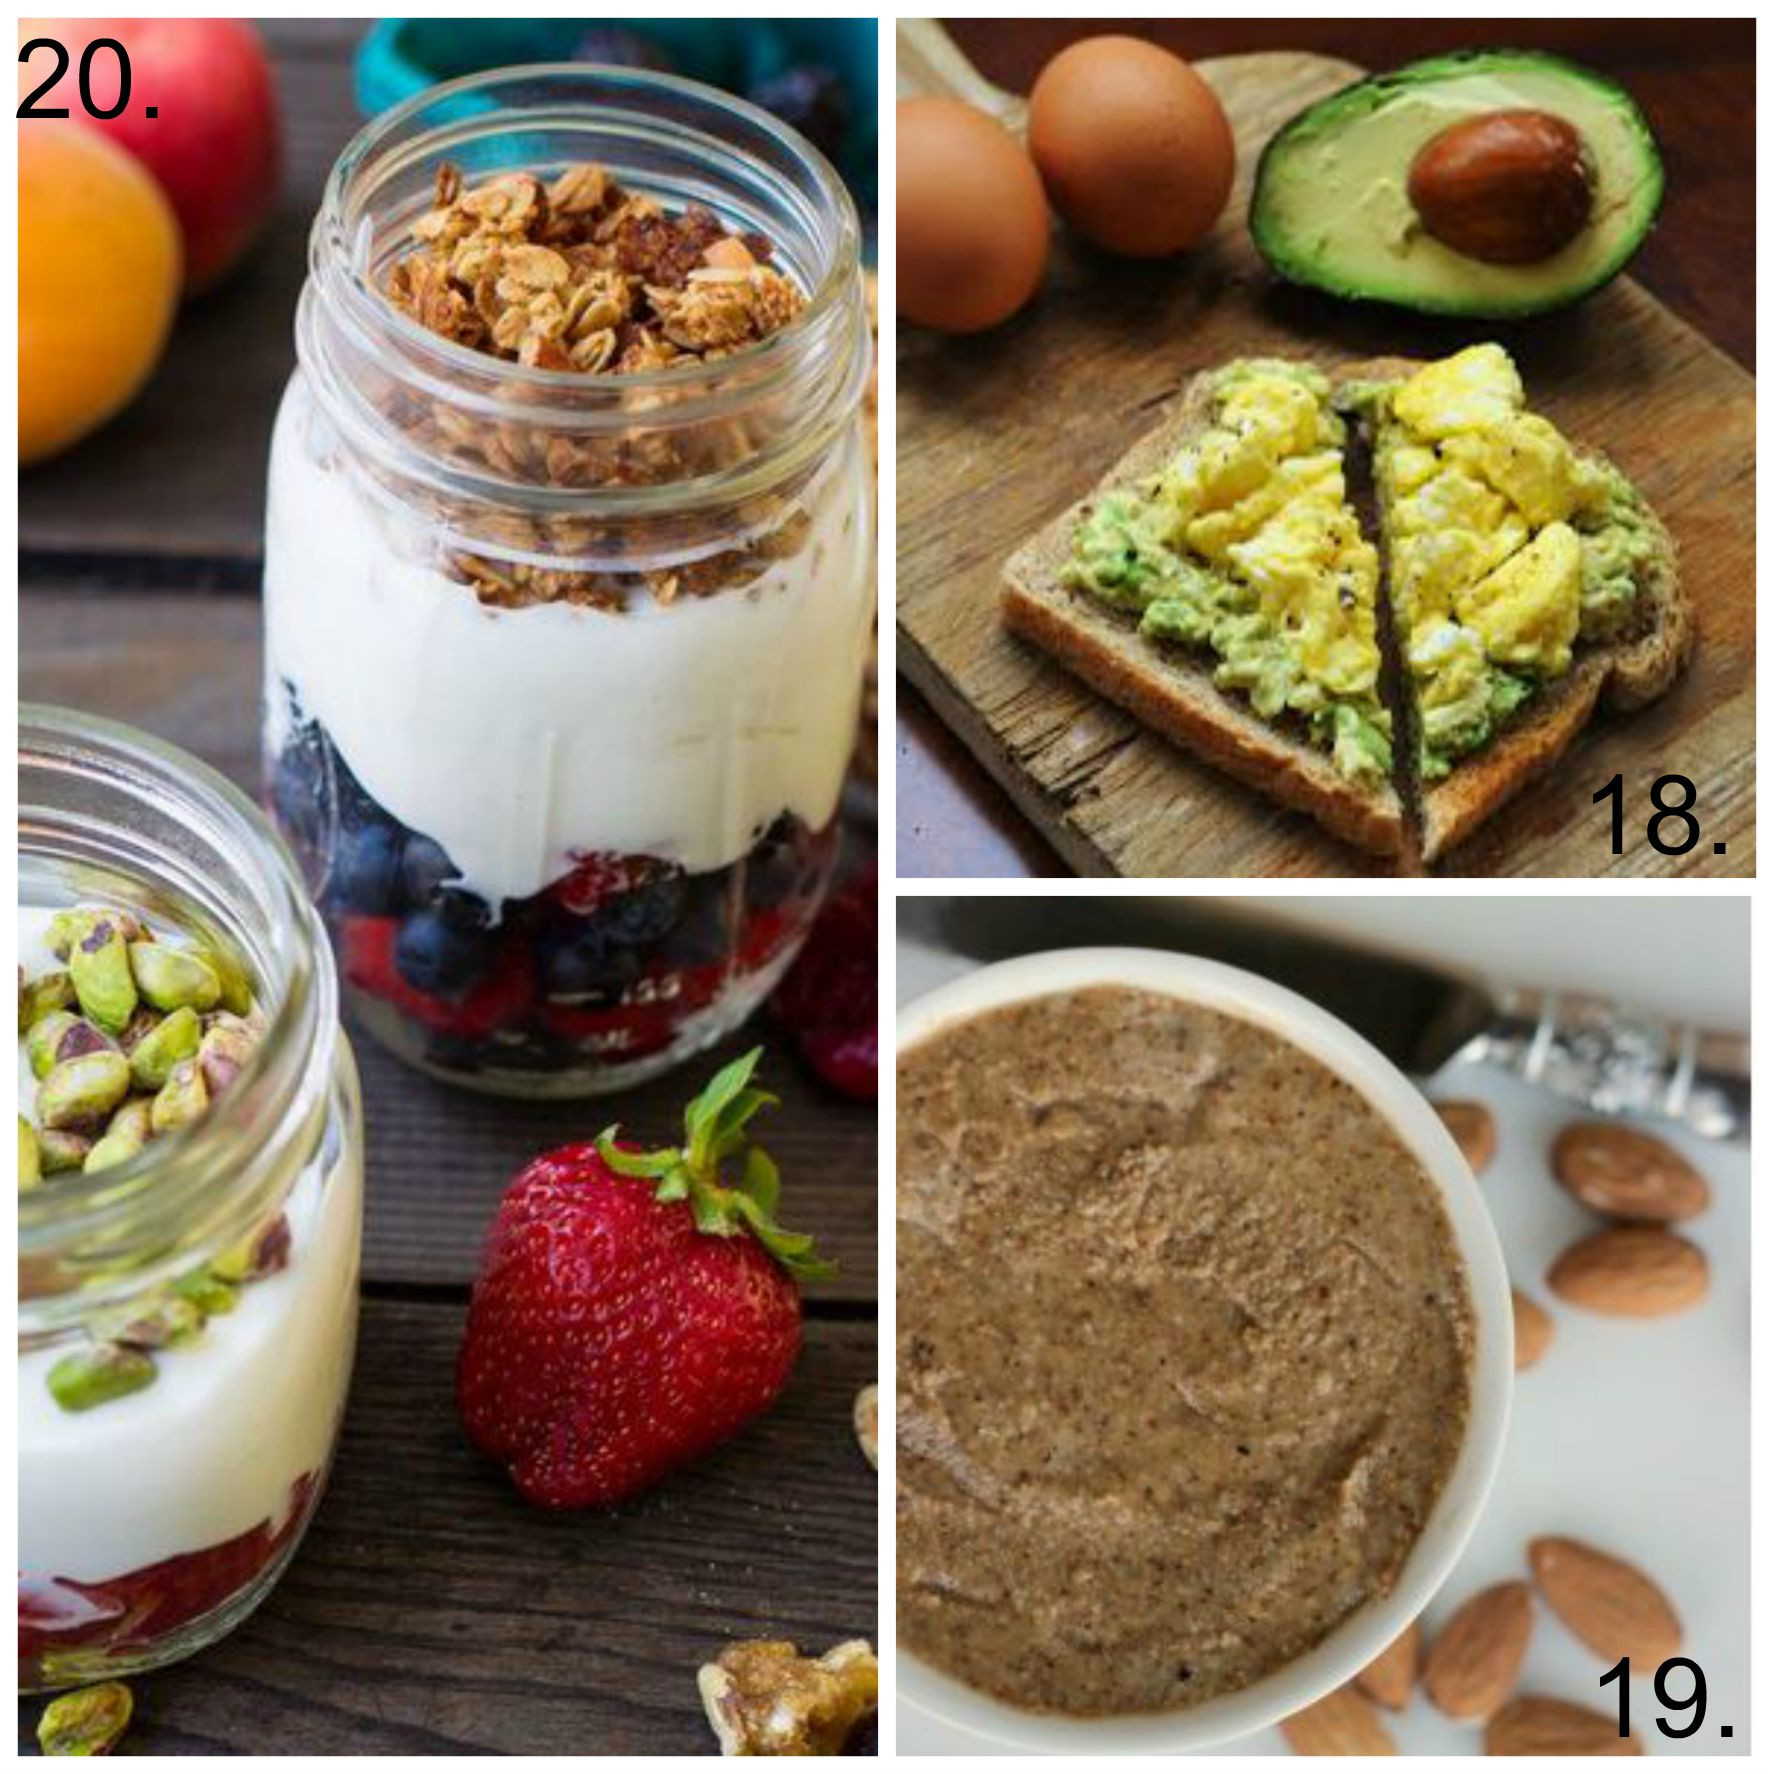 Quick And Easy Breakfast Ideas  20 Quick and Easy Breakfast ideas My Frugal Adventures